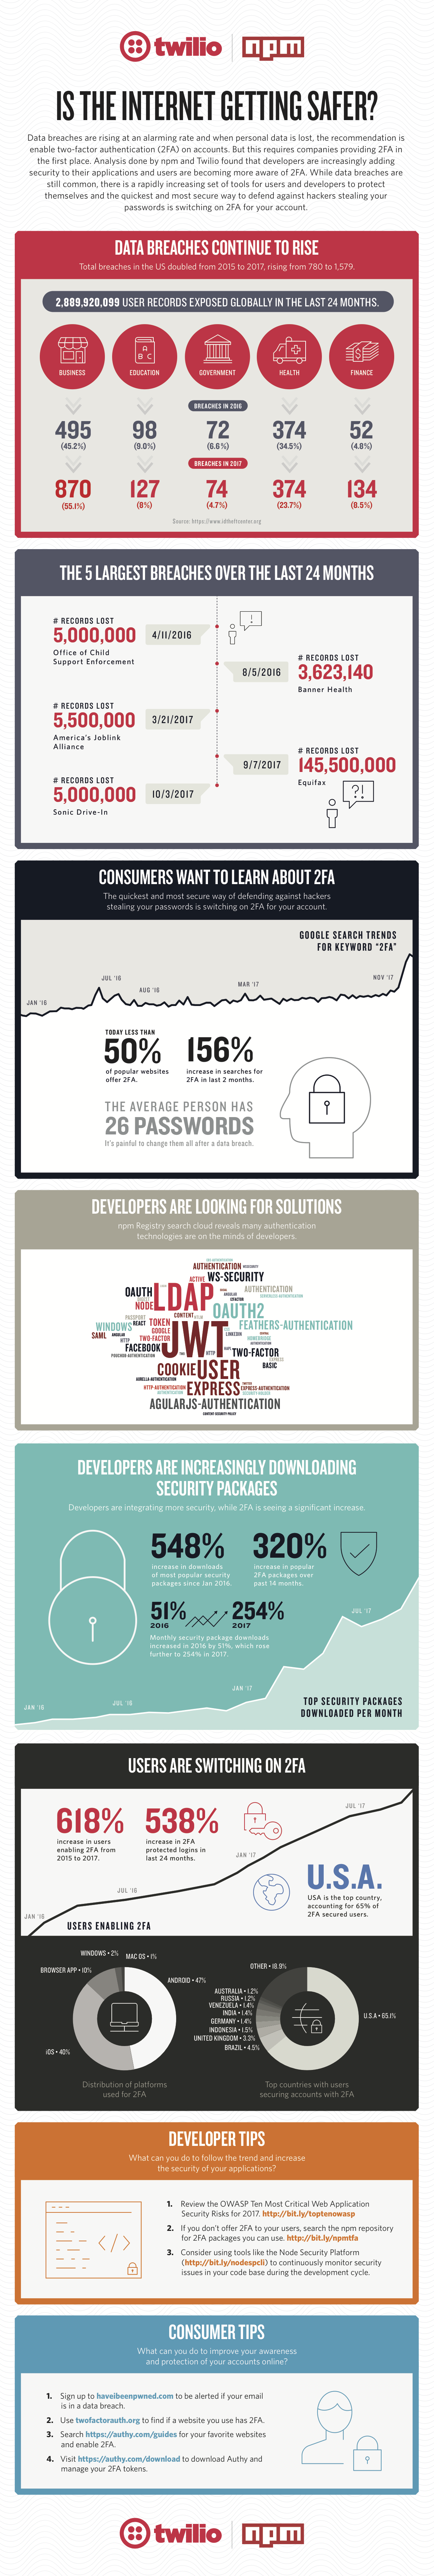 Is-The-Internet-Getting-Any-Safer-Infographic